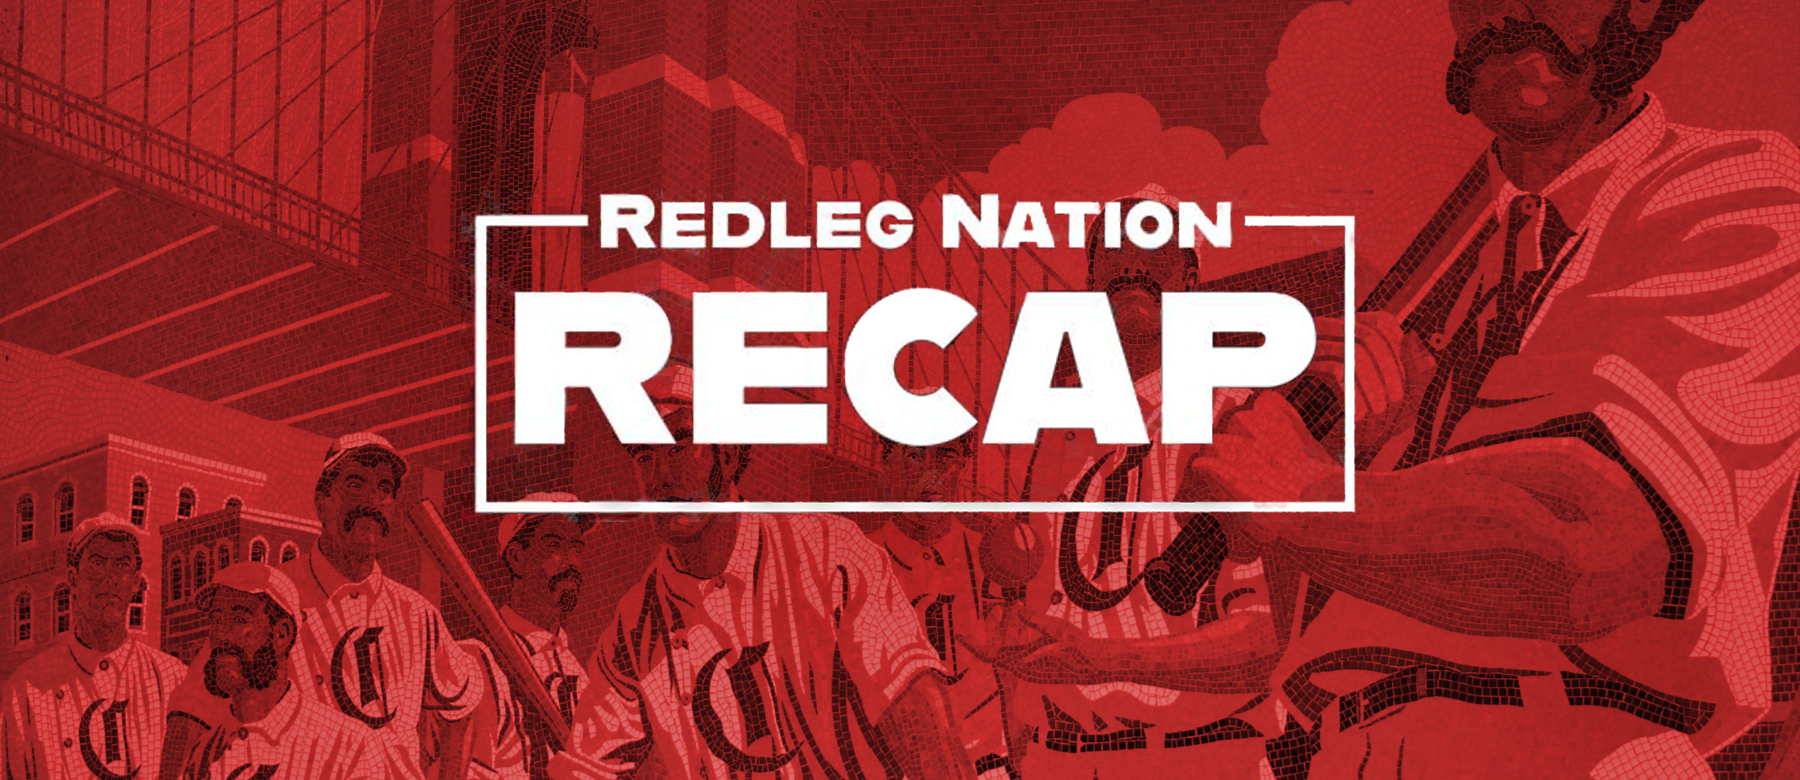 Bauer Falters as Reds fall to Mets 6-3 - Redleg Nation